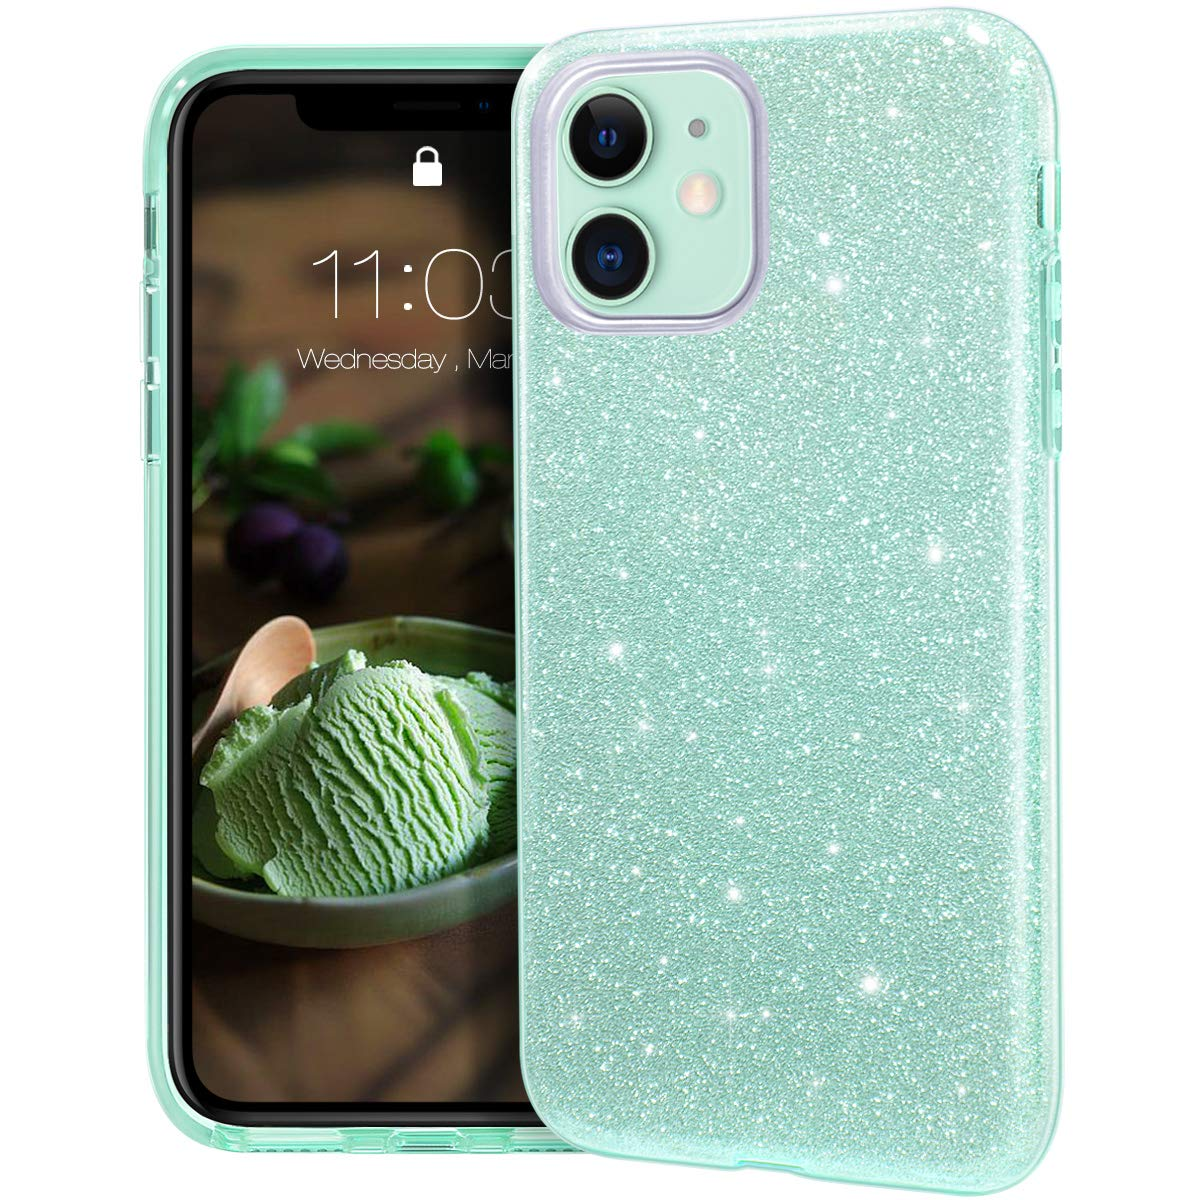 MATEPROX iPhone 11 case,Bling Sparkle Cute Girls Women Protective Case for iPhone 2019 6.1inch(Green)